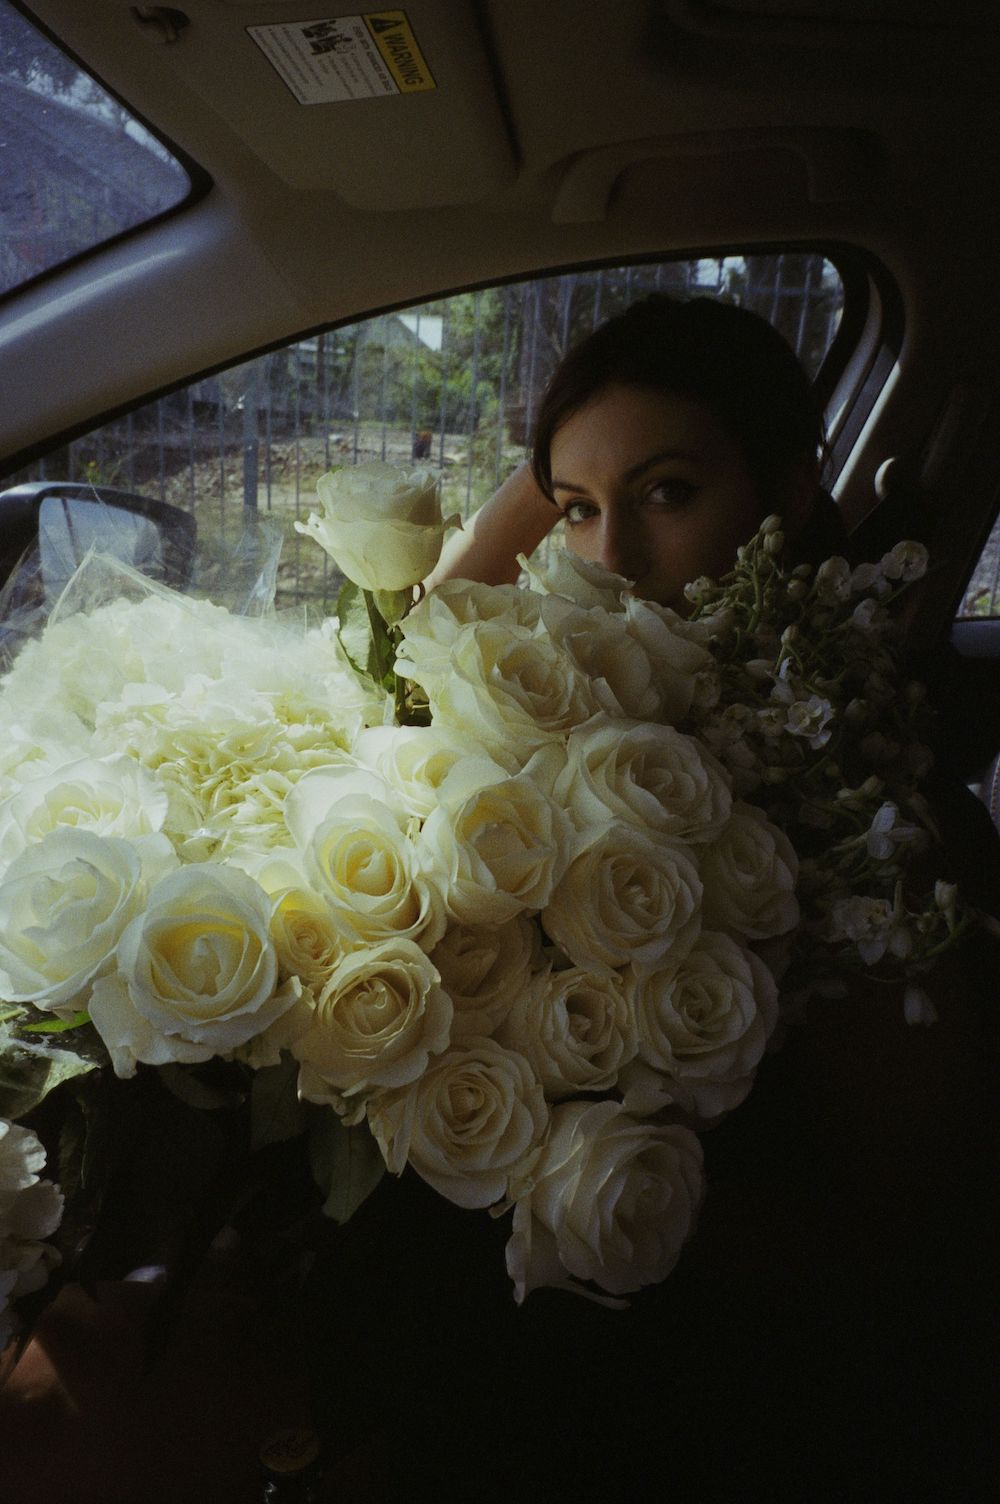 cody-swann-photo-69-postponed-wedding-flowers-2